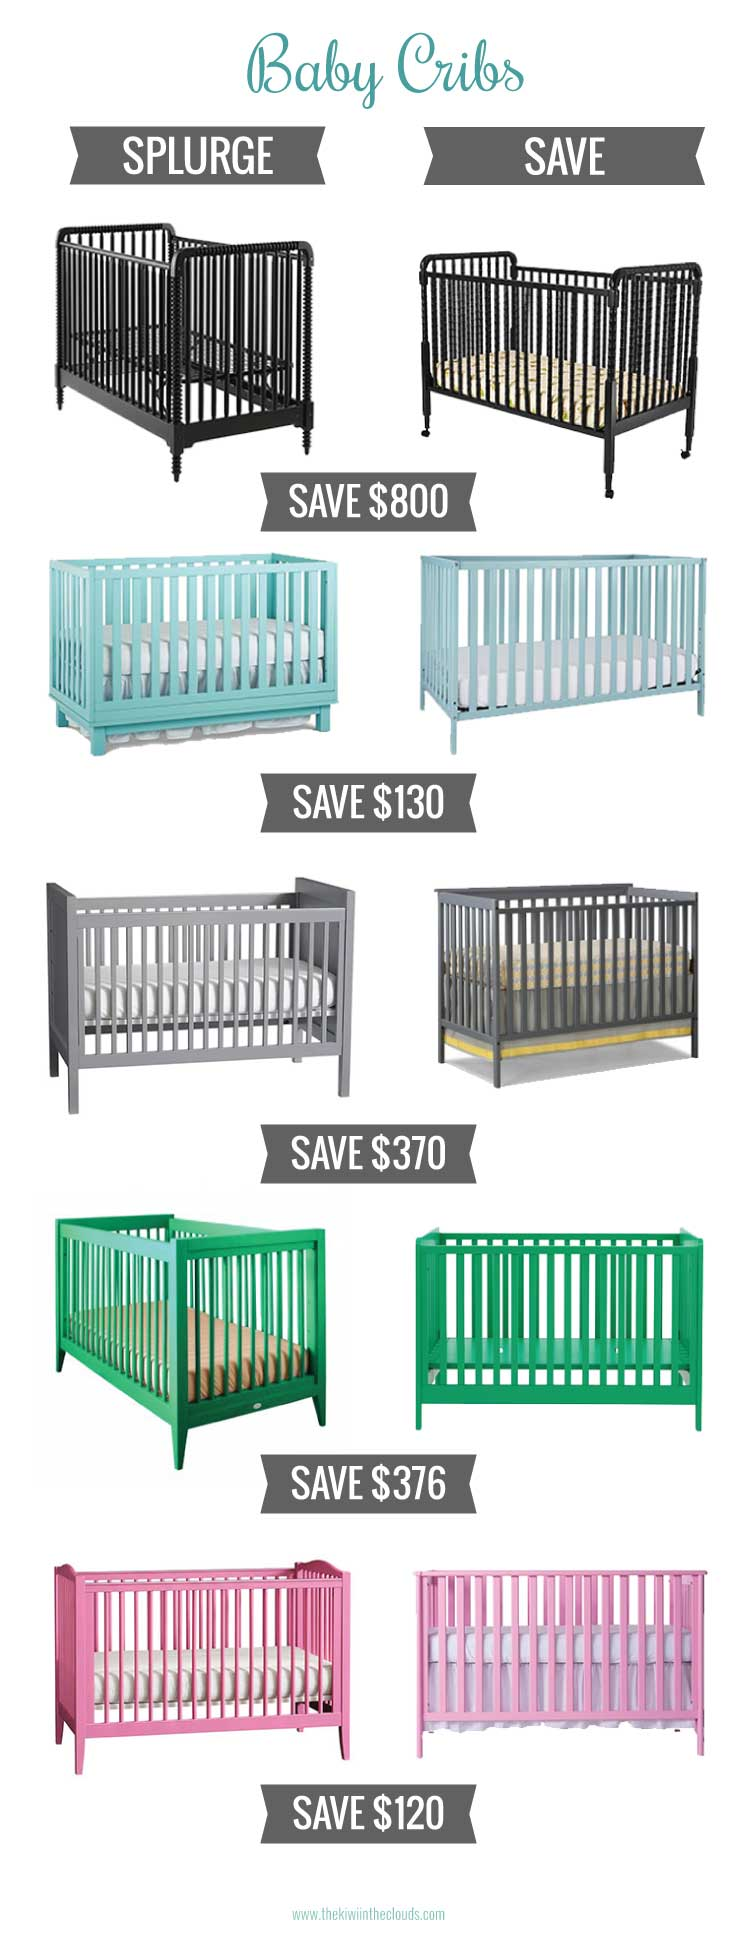 baby cribs splurge vs save a crib for every budget